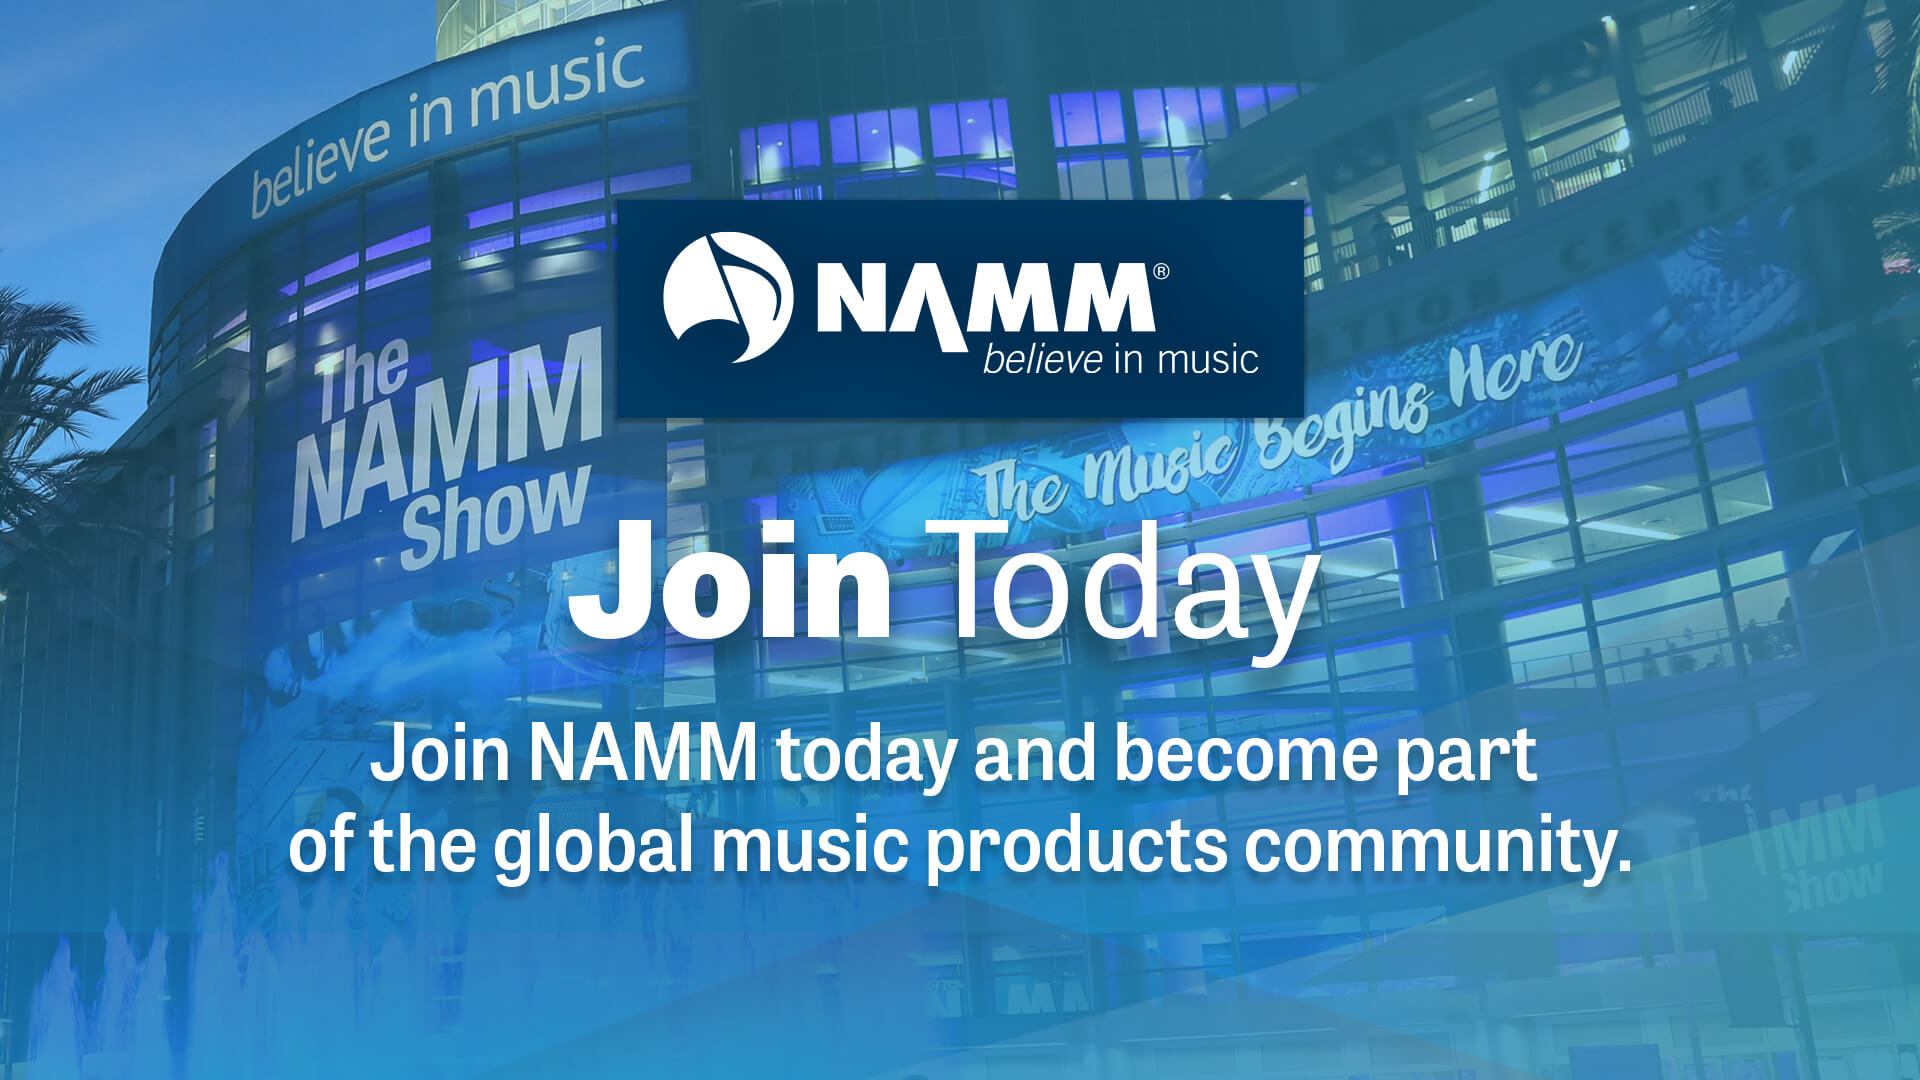 Join Today - Join NAMM today and become part of the global music products community